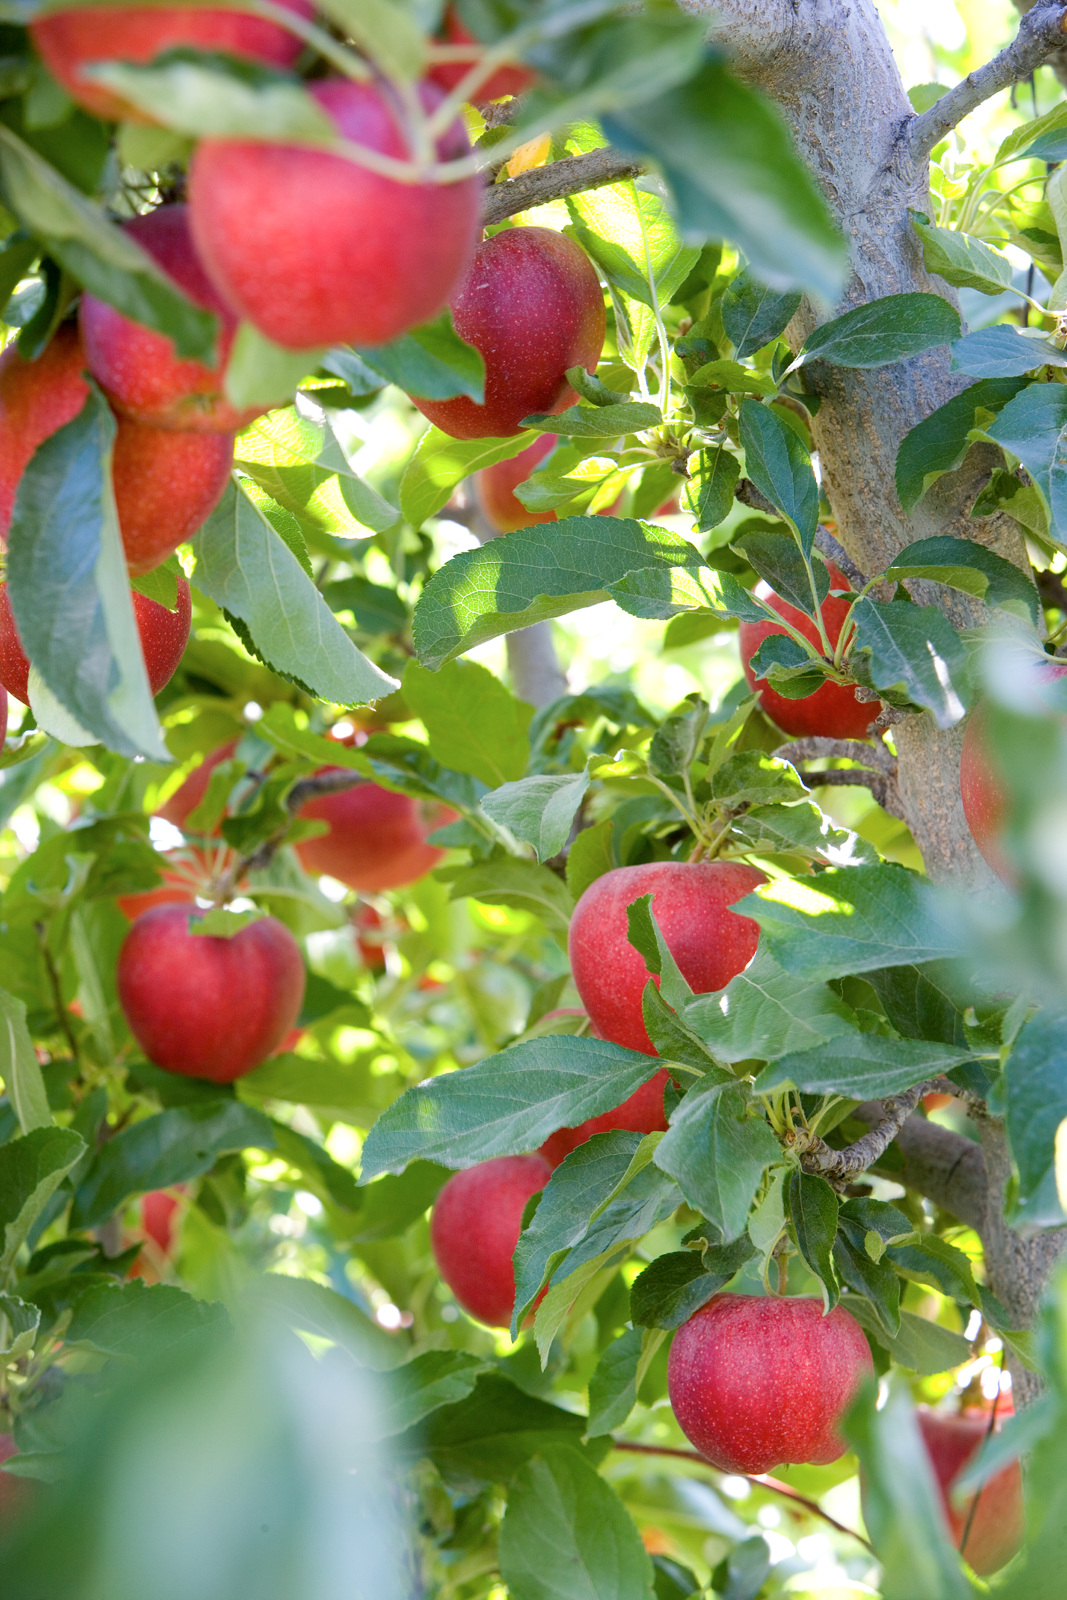 photo of an apple tree with red apples hanging from a branch.